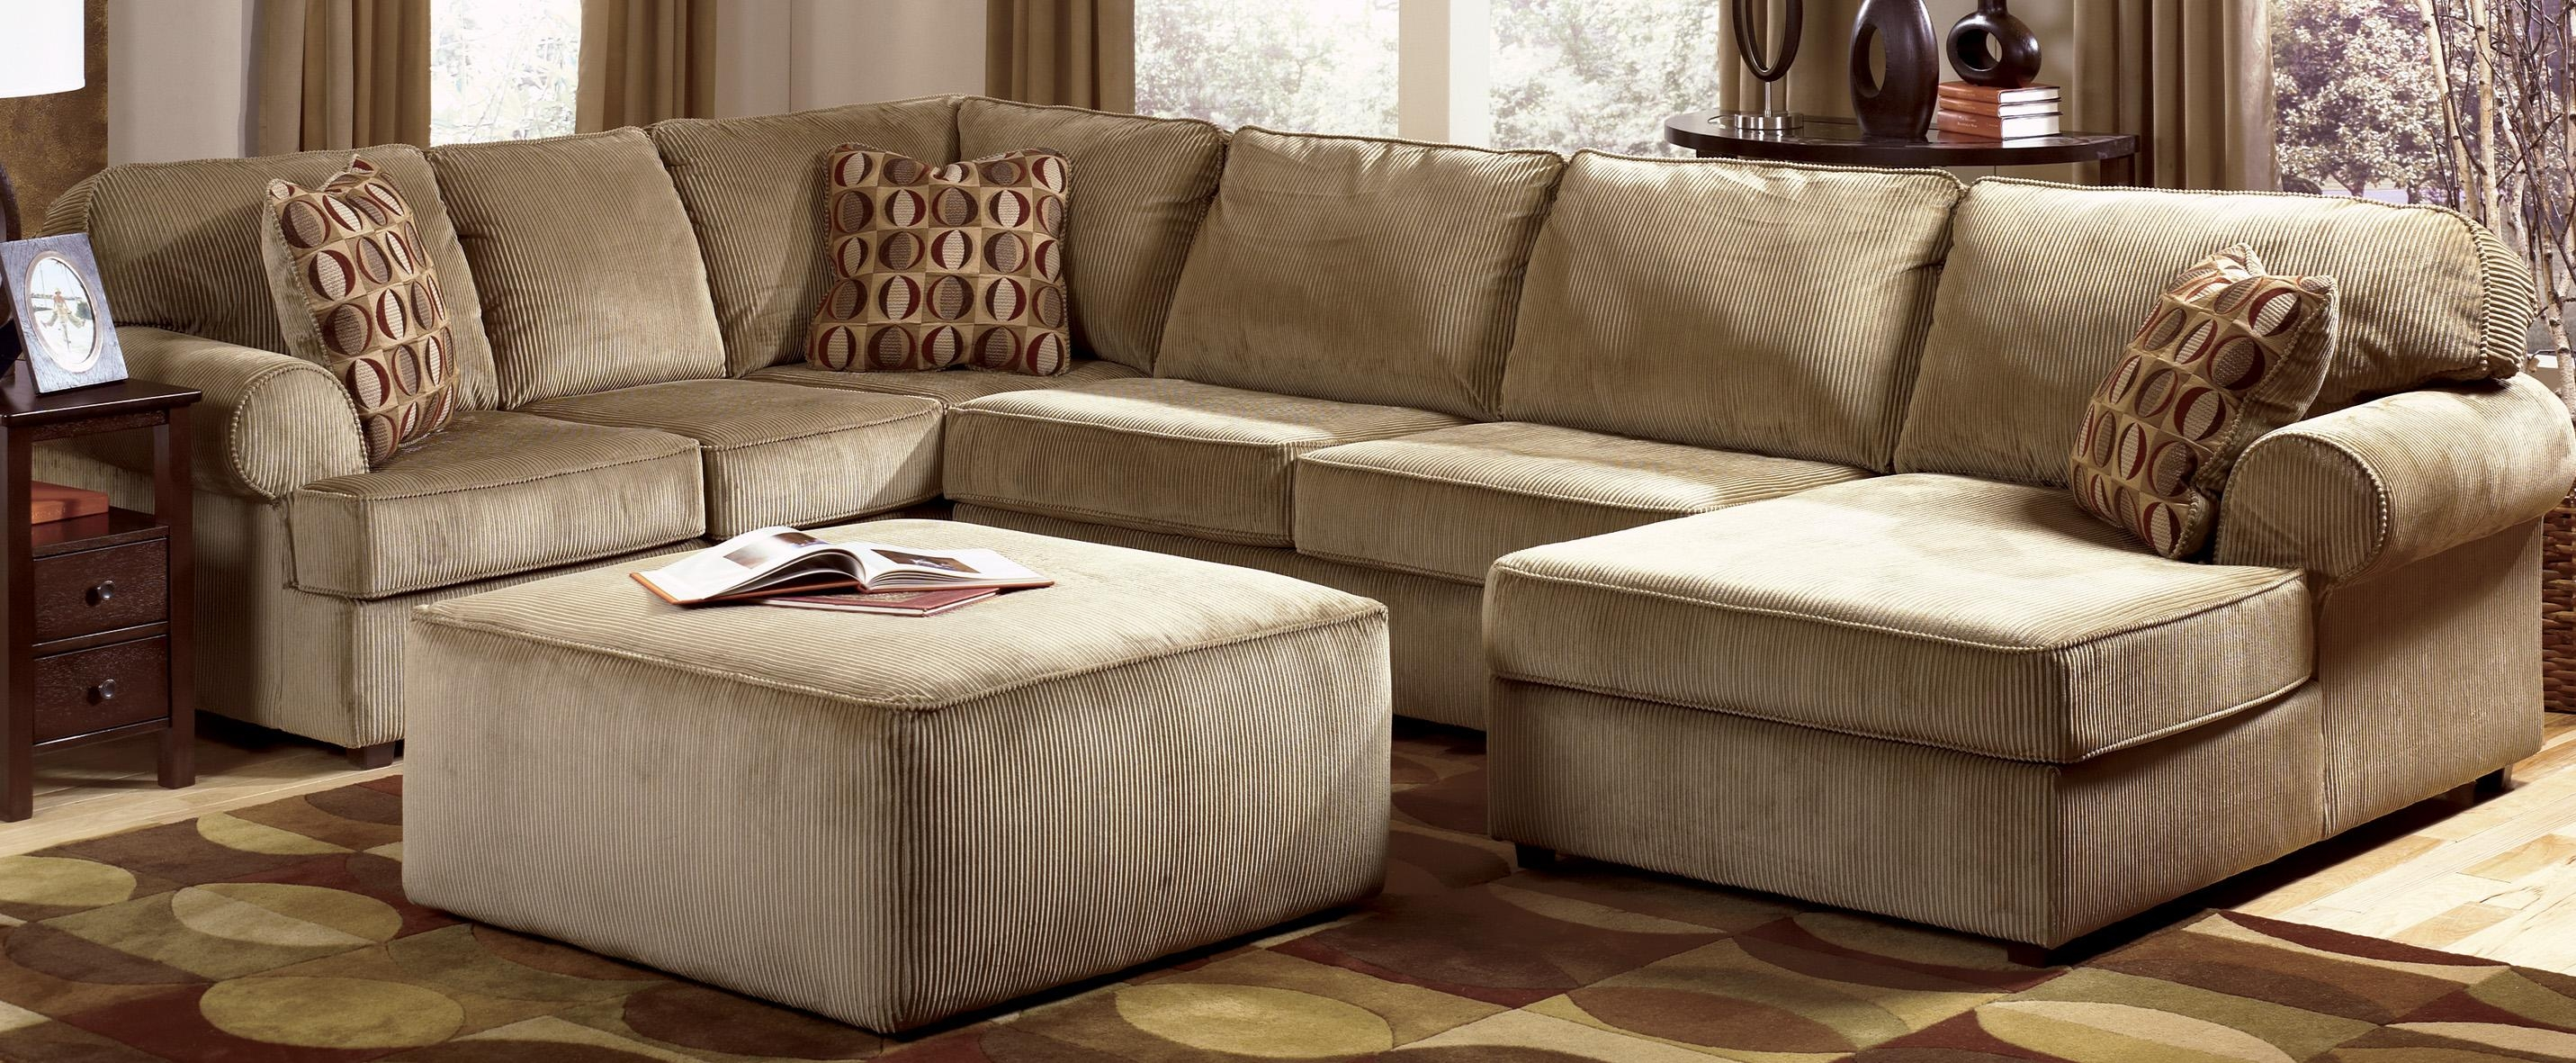 Sofas: Oversized Sofas That Are Ready For Hours Of Lounging Time With Regard To Sofa With Chaise And Ottoman (View 20 of 20)